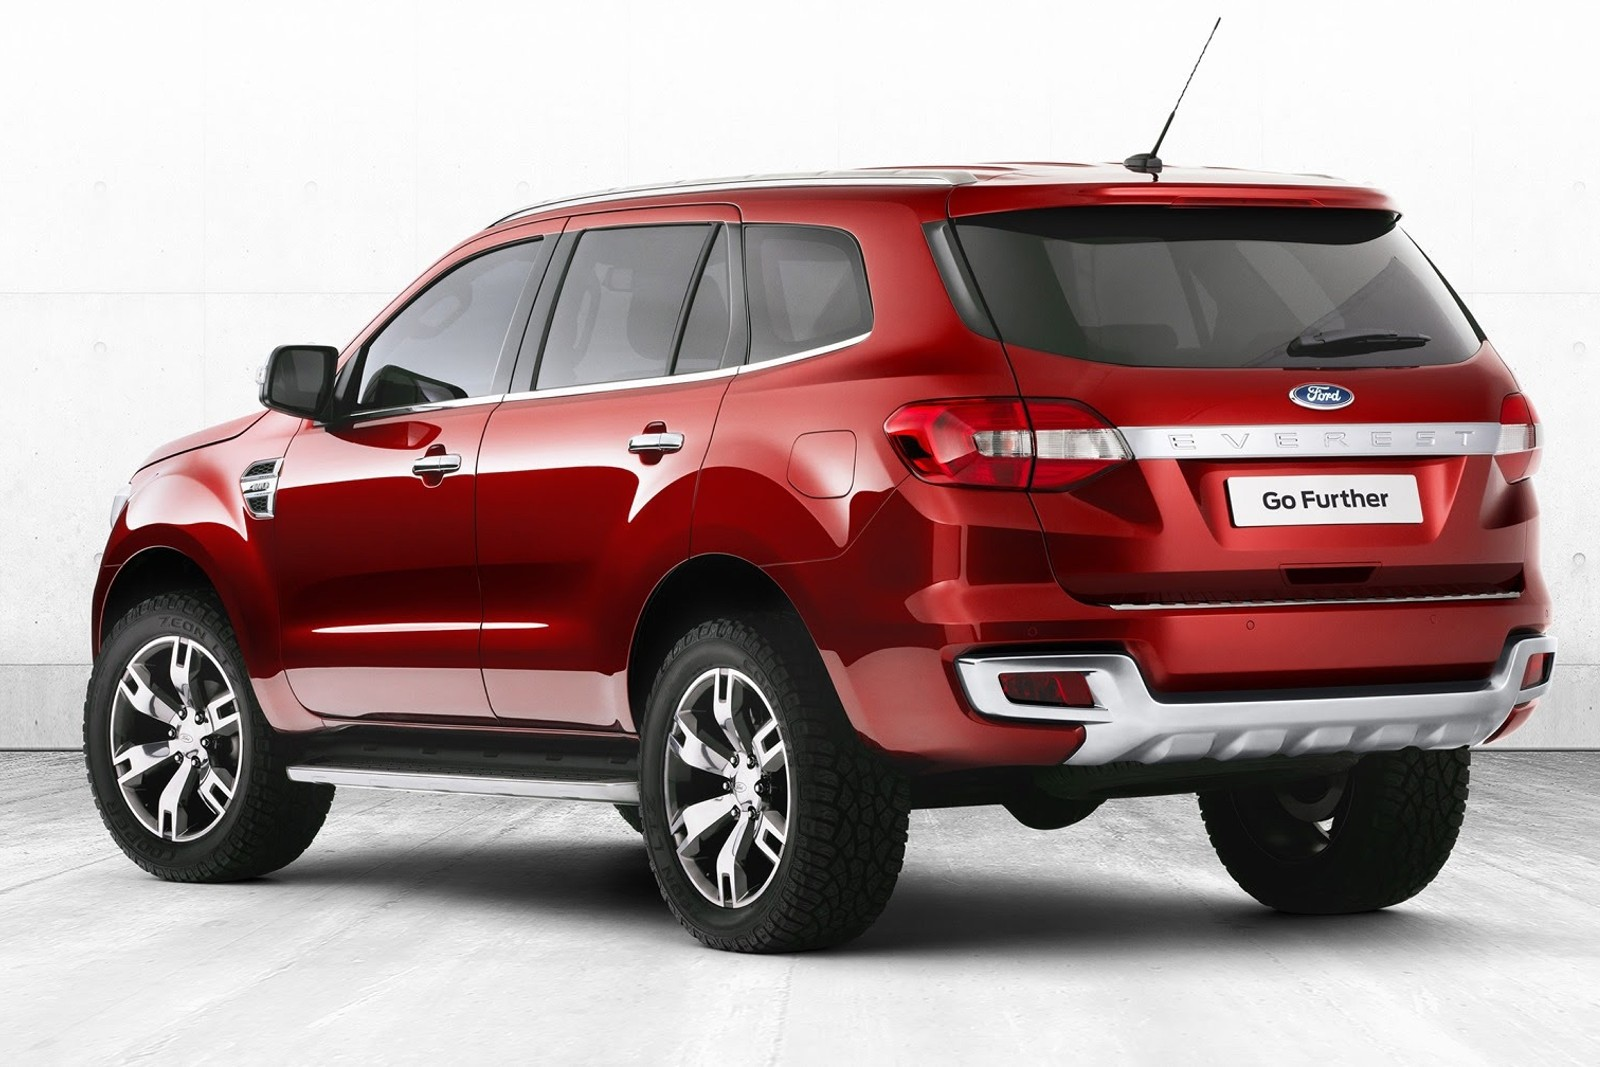 Ford Everest SUV Concept MY 2015